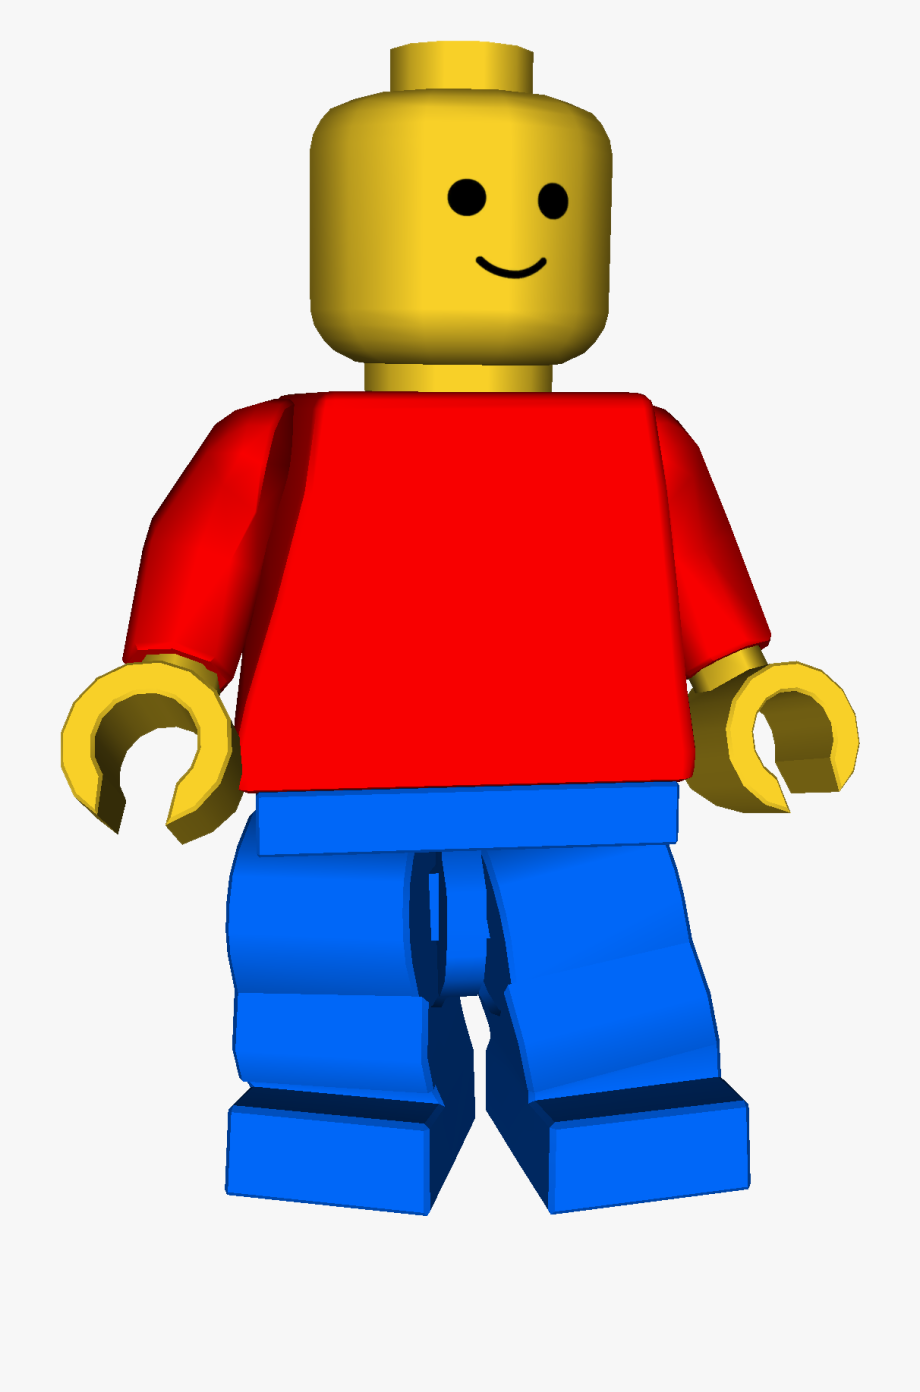 Lego person clipart jpg free library Lego Universe Party Birthday Lego Minifigure - Lego Man ... jpg free library